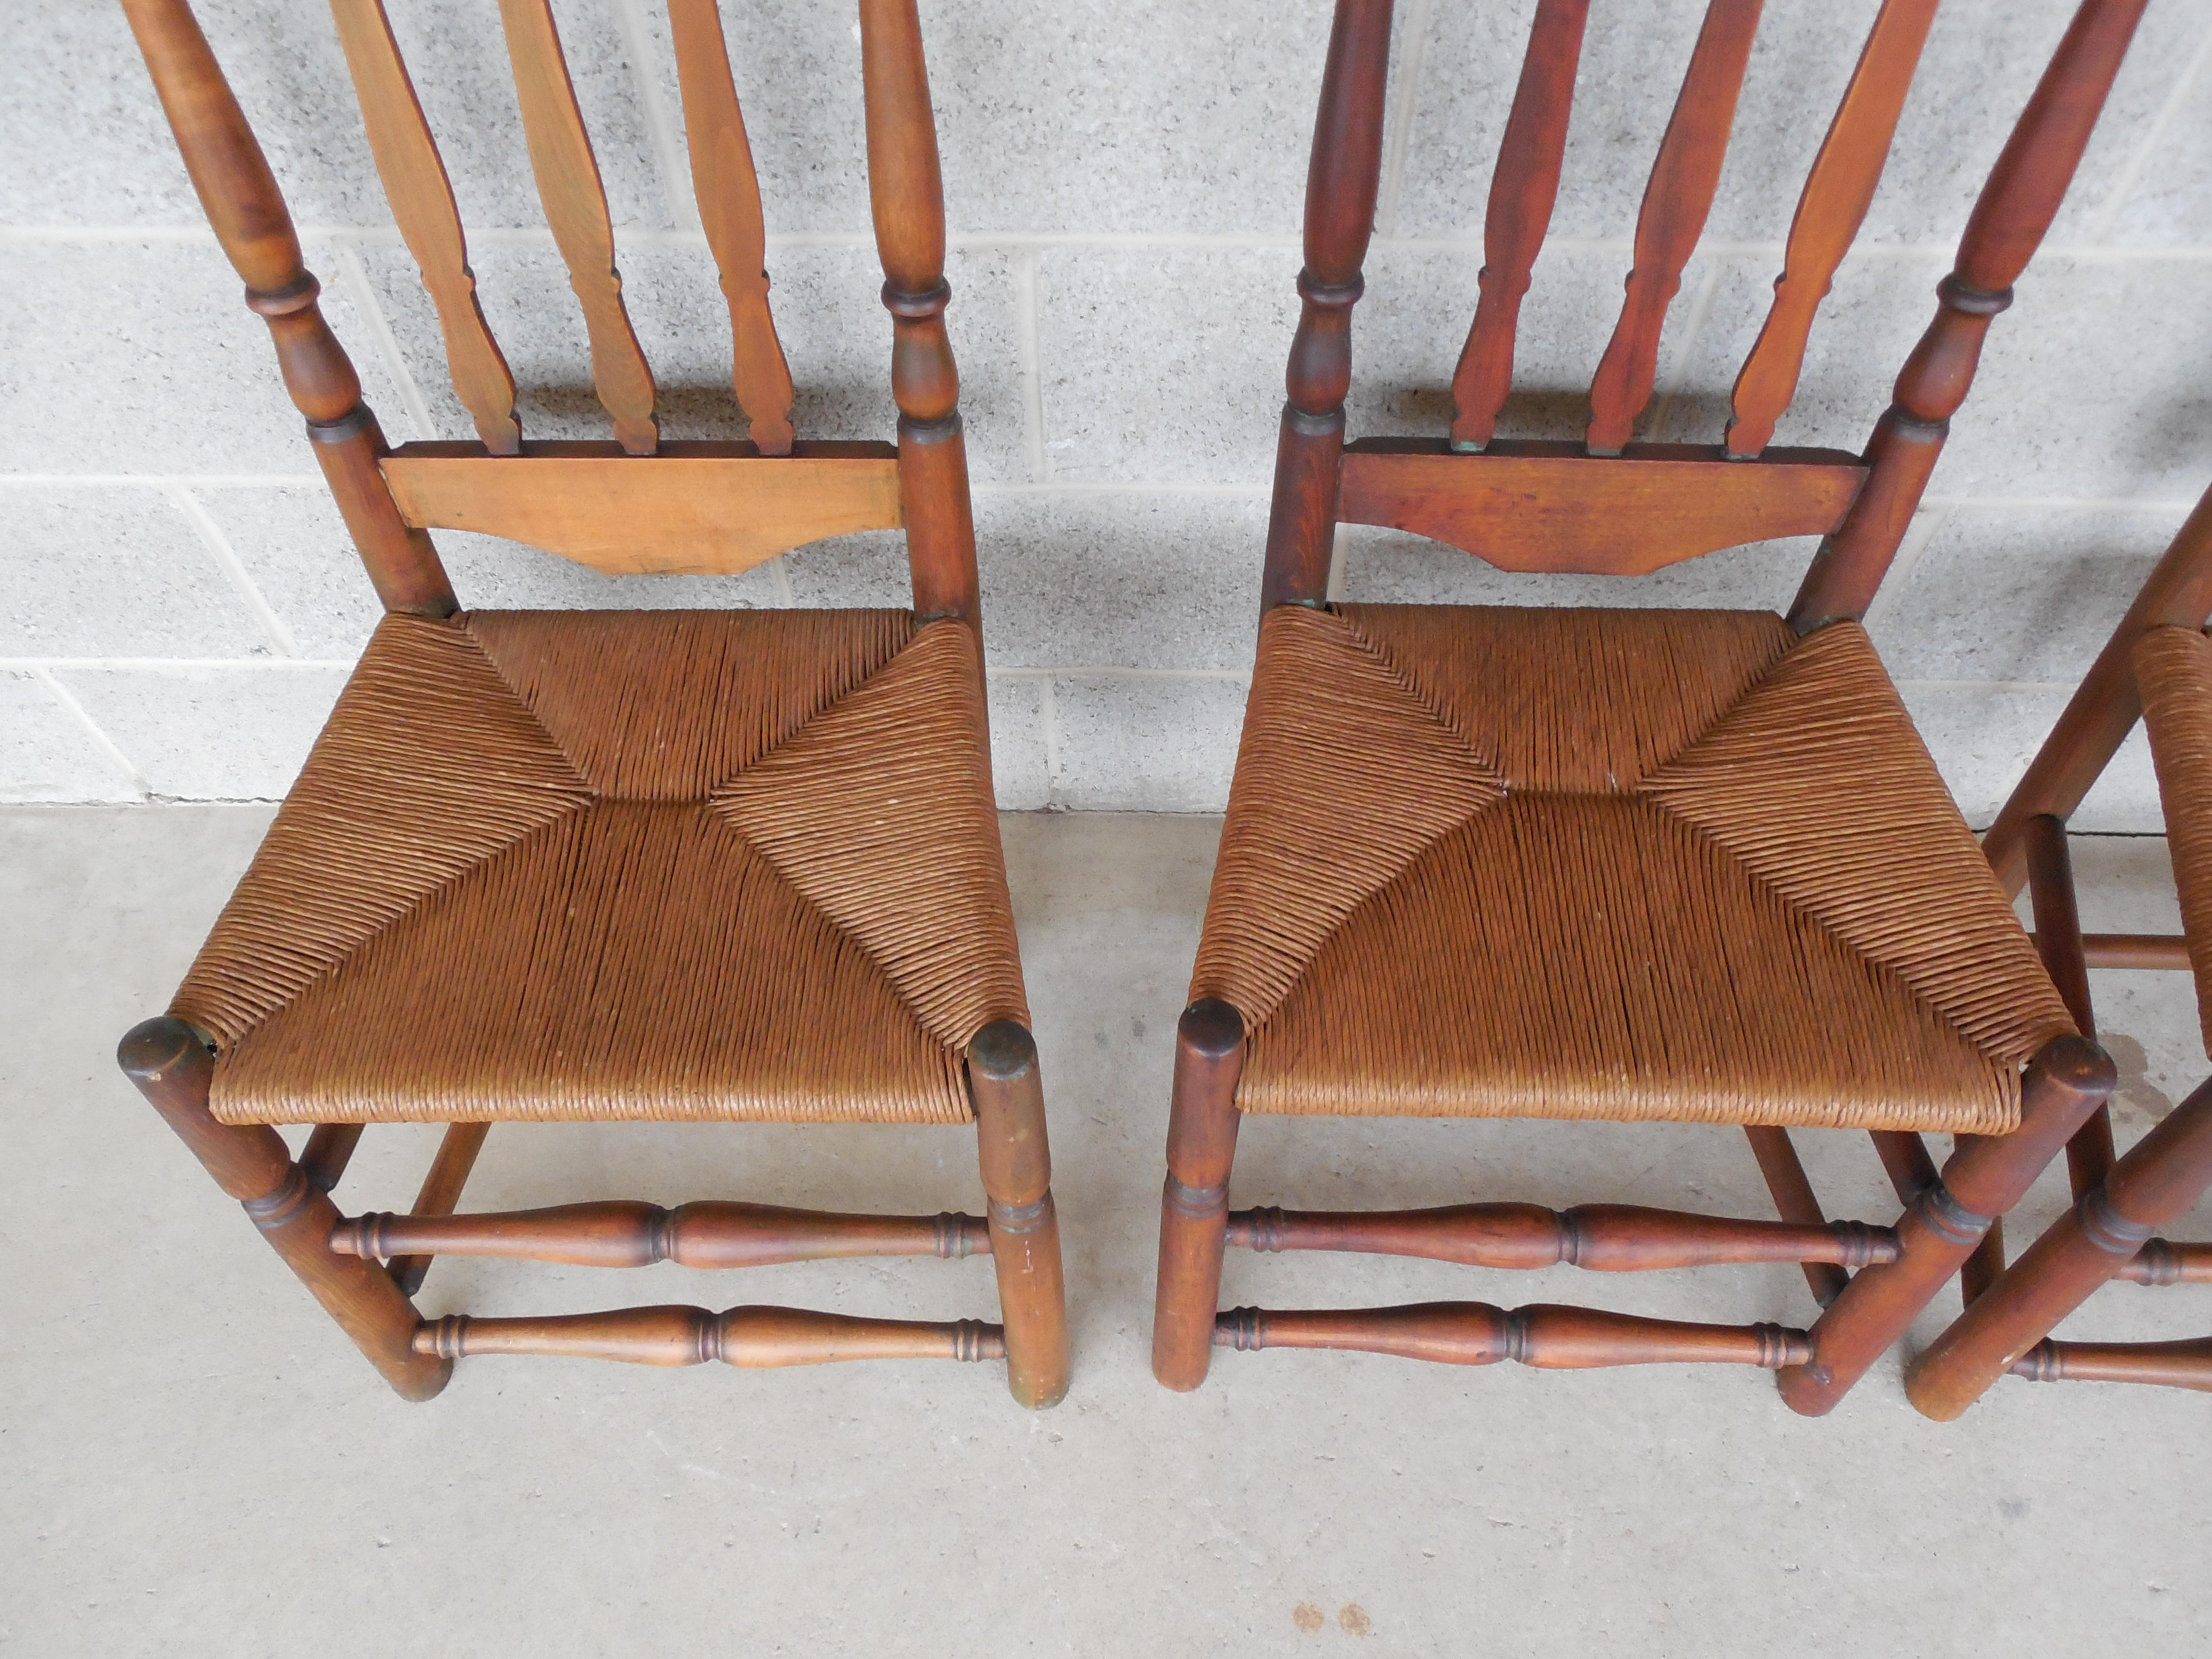 Charmant Set Of 6 Antique Turned Windsor Rush Bottom Chairs   Image 2 Of 12